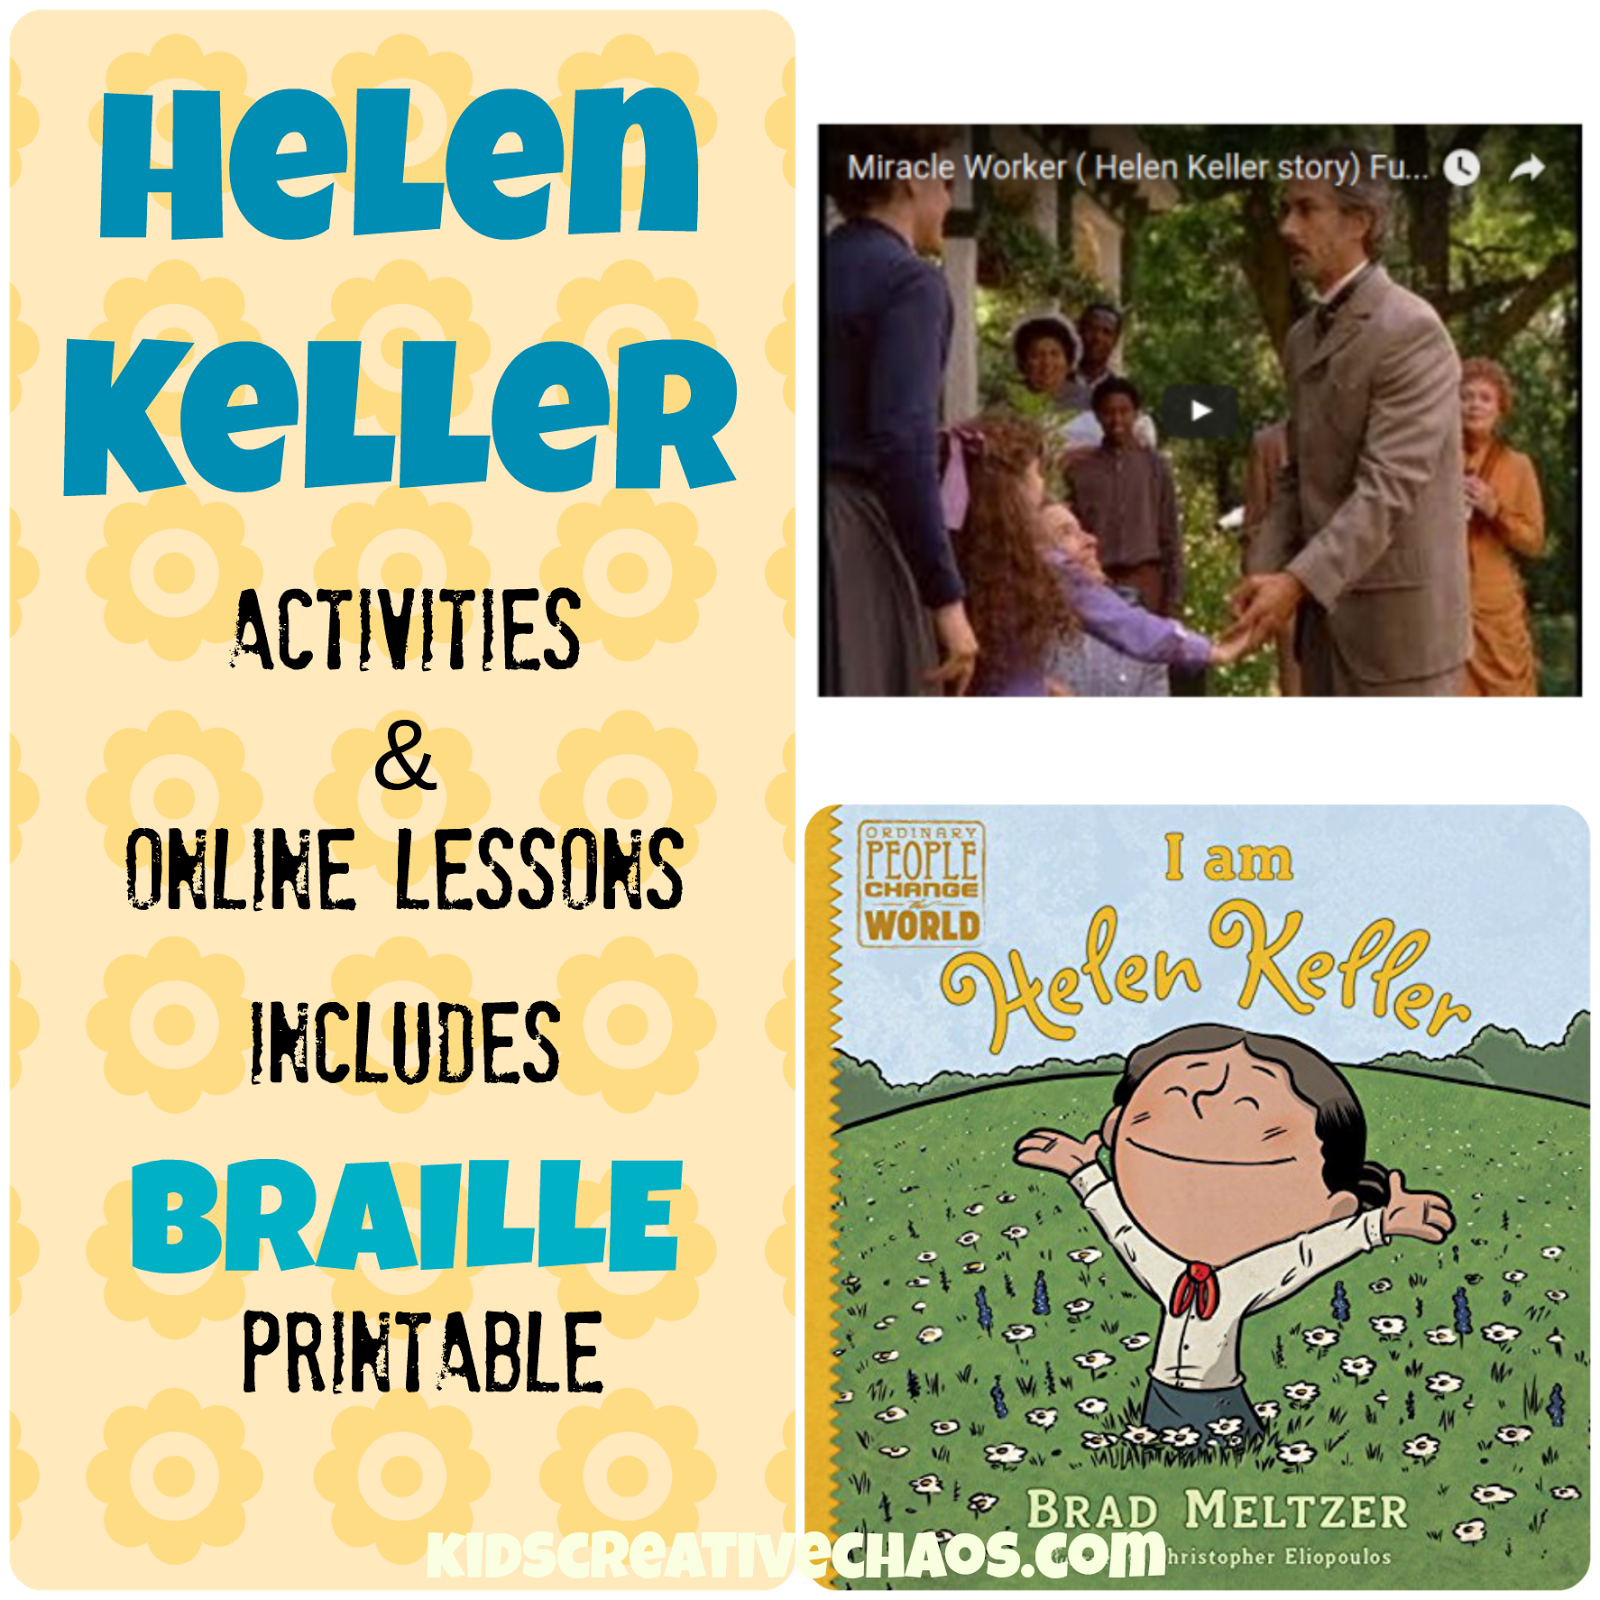 Win a book and enjoy online lessons too! Helen Keller Lesson Plans ...